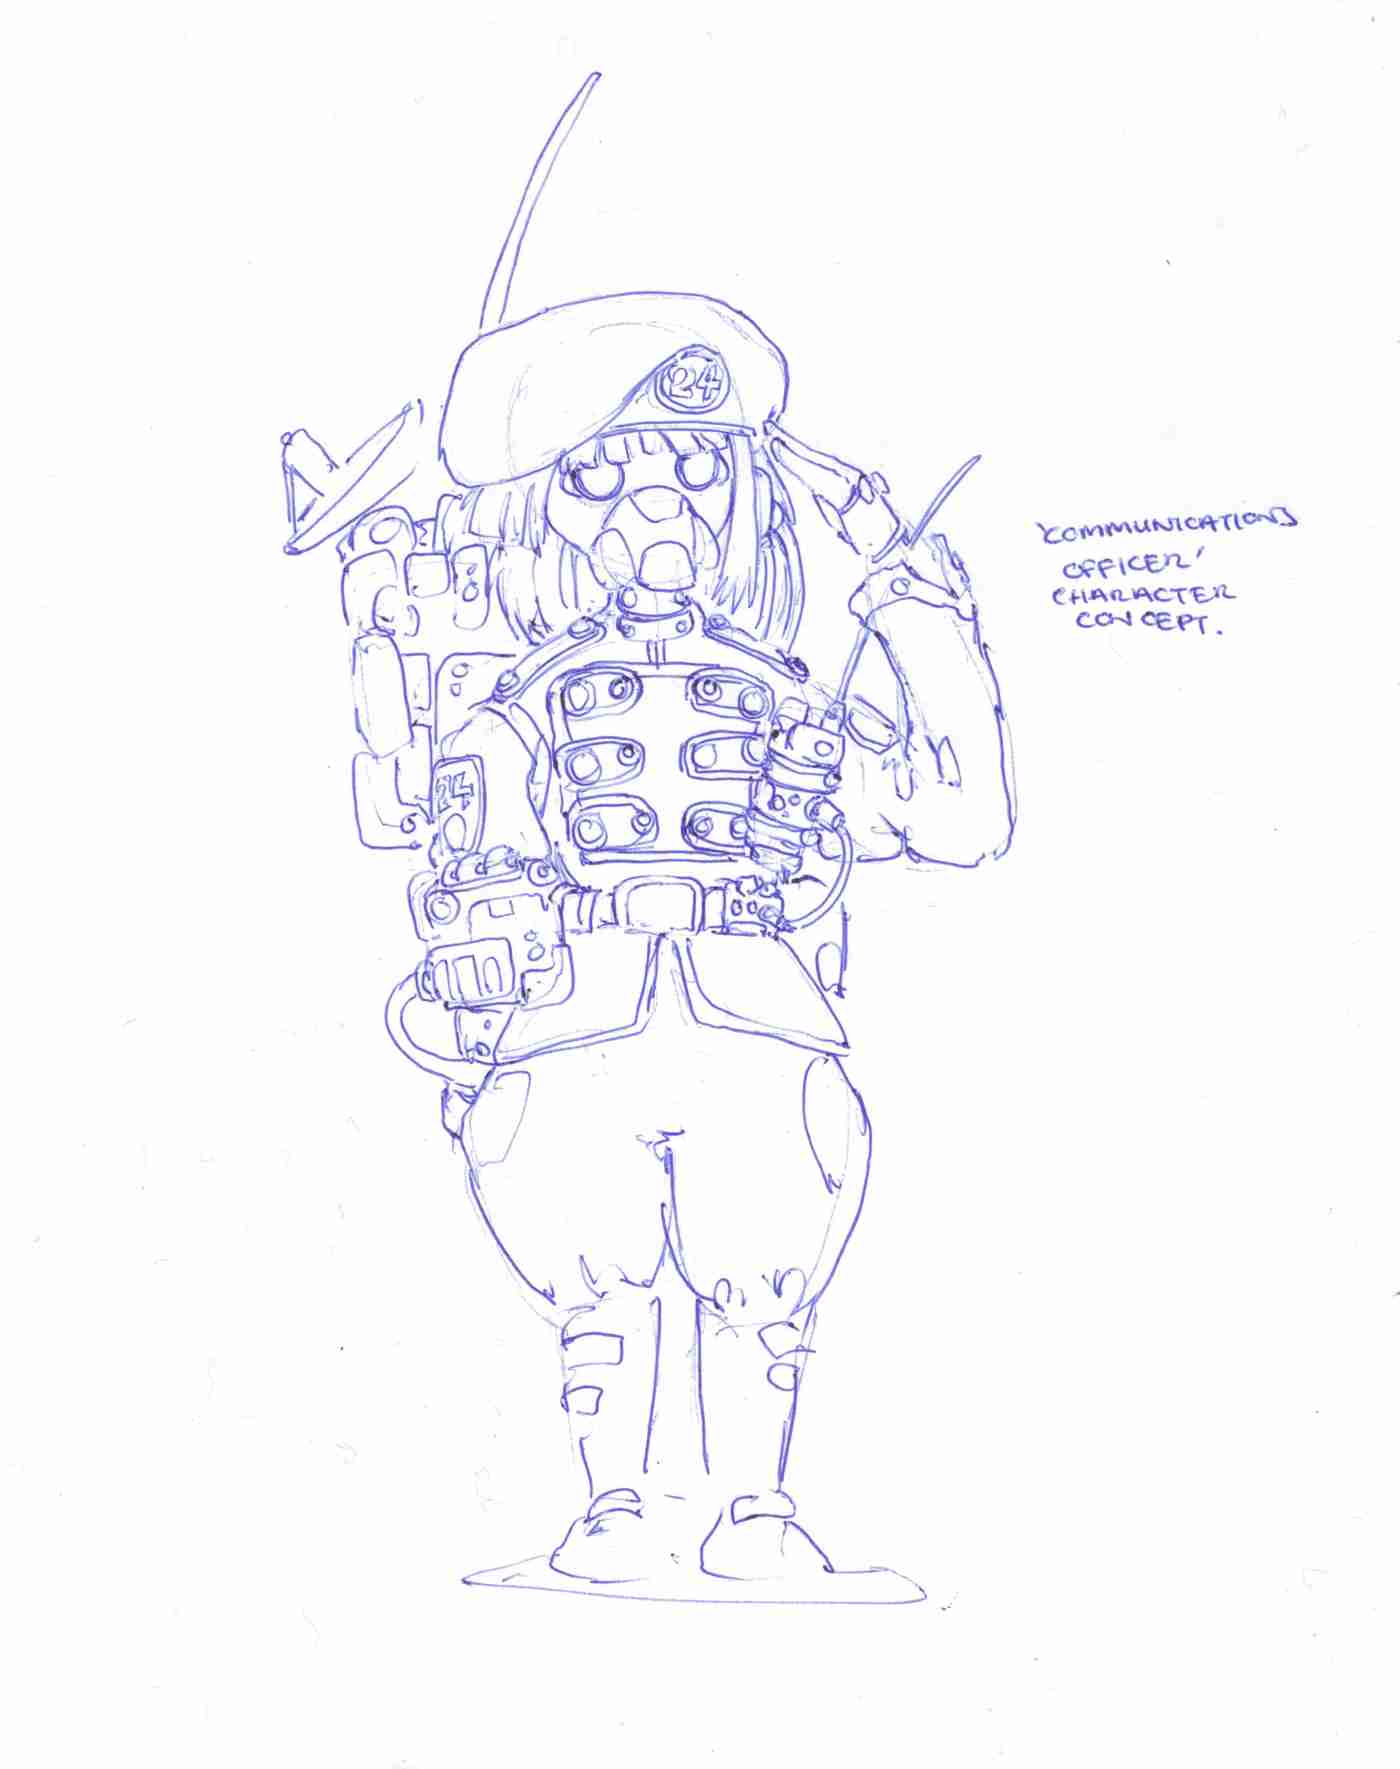 Character concept sketch, communications officer